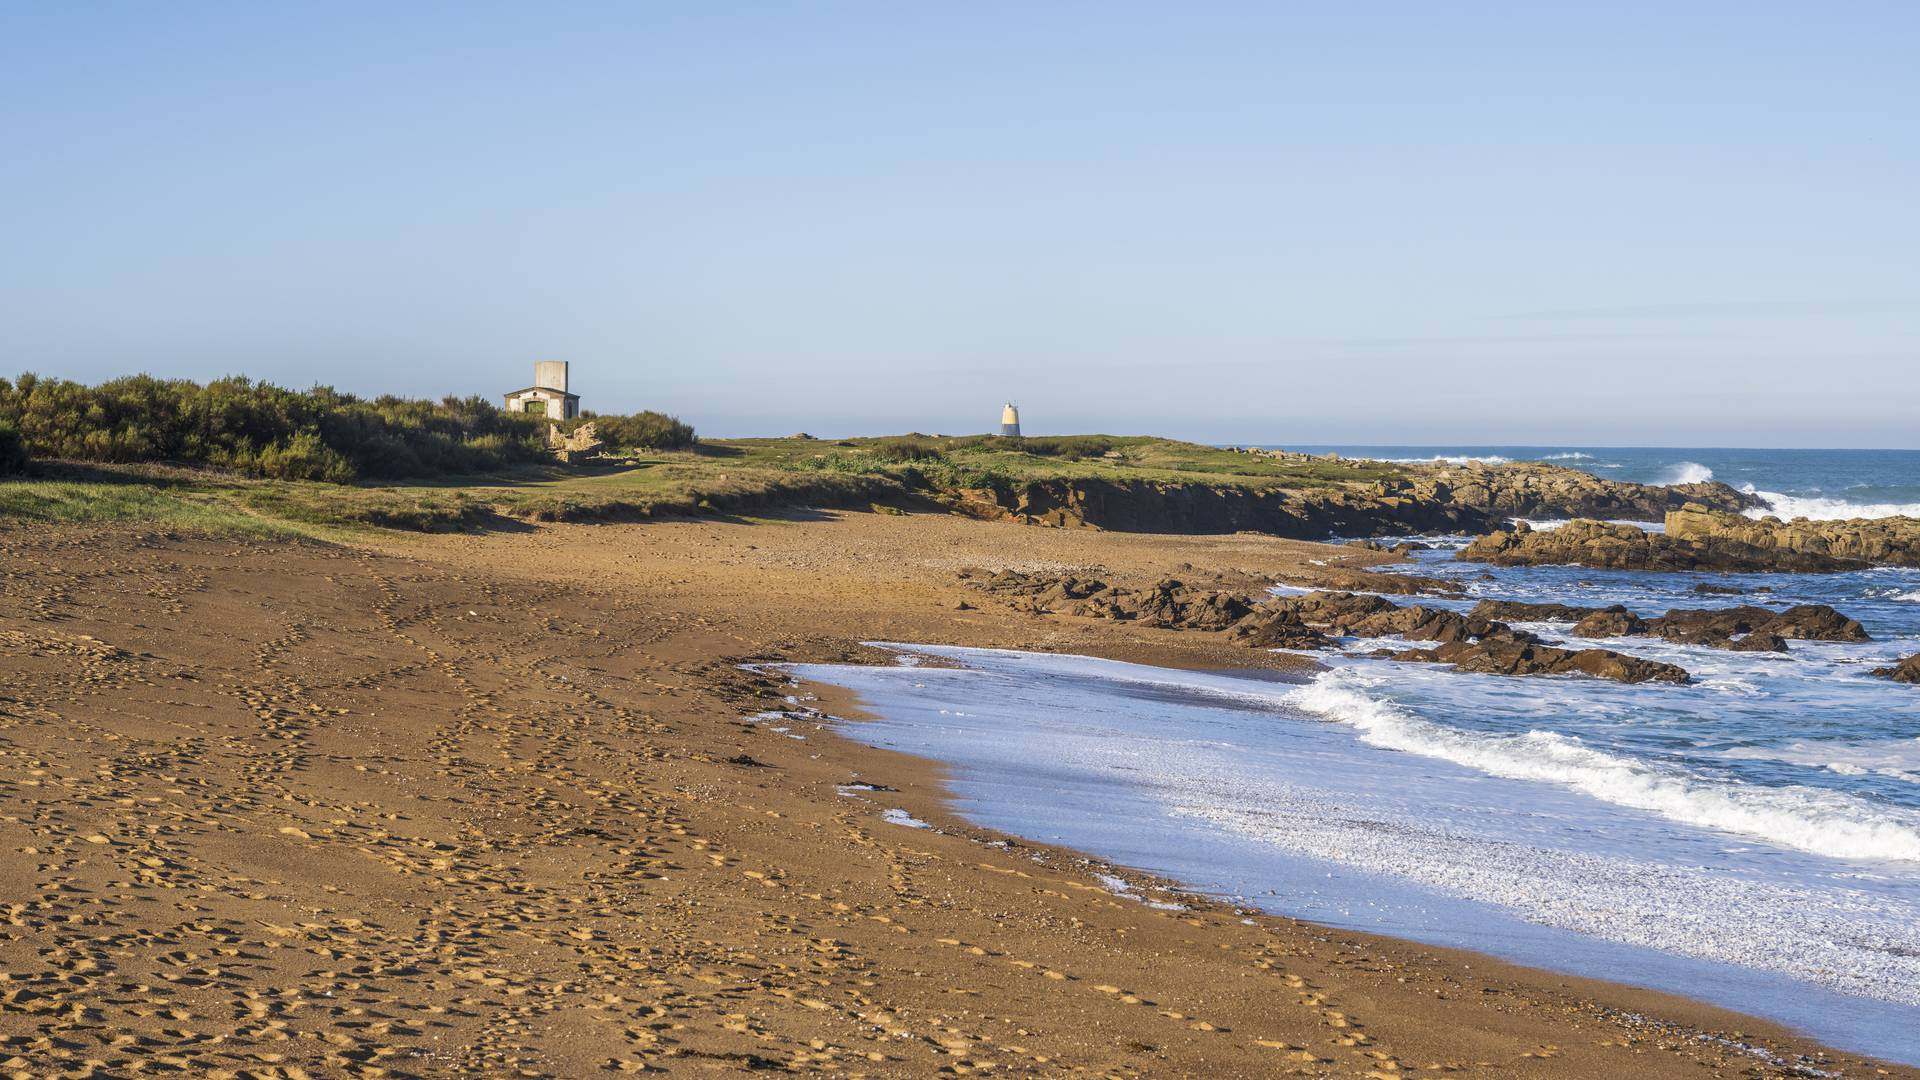 beaches of the North West coast L'ile d'Yeu